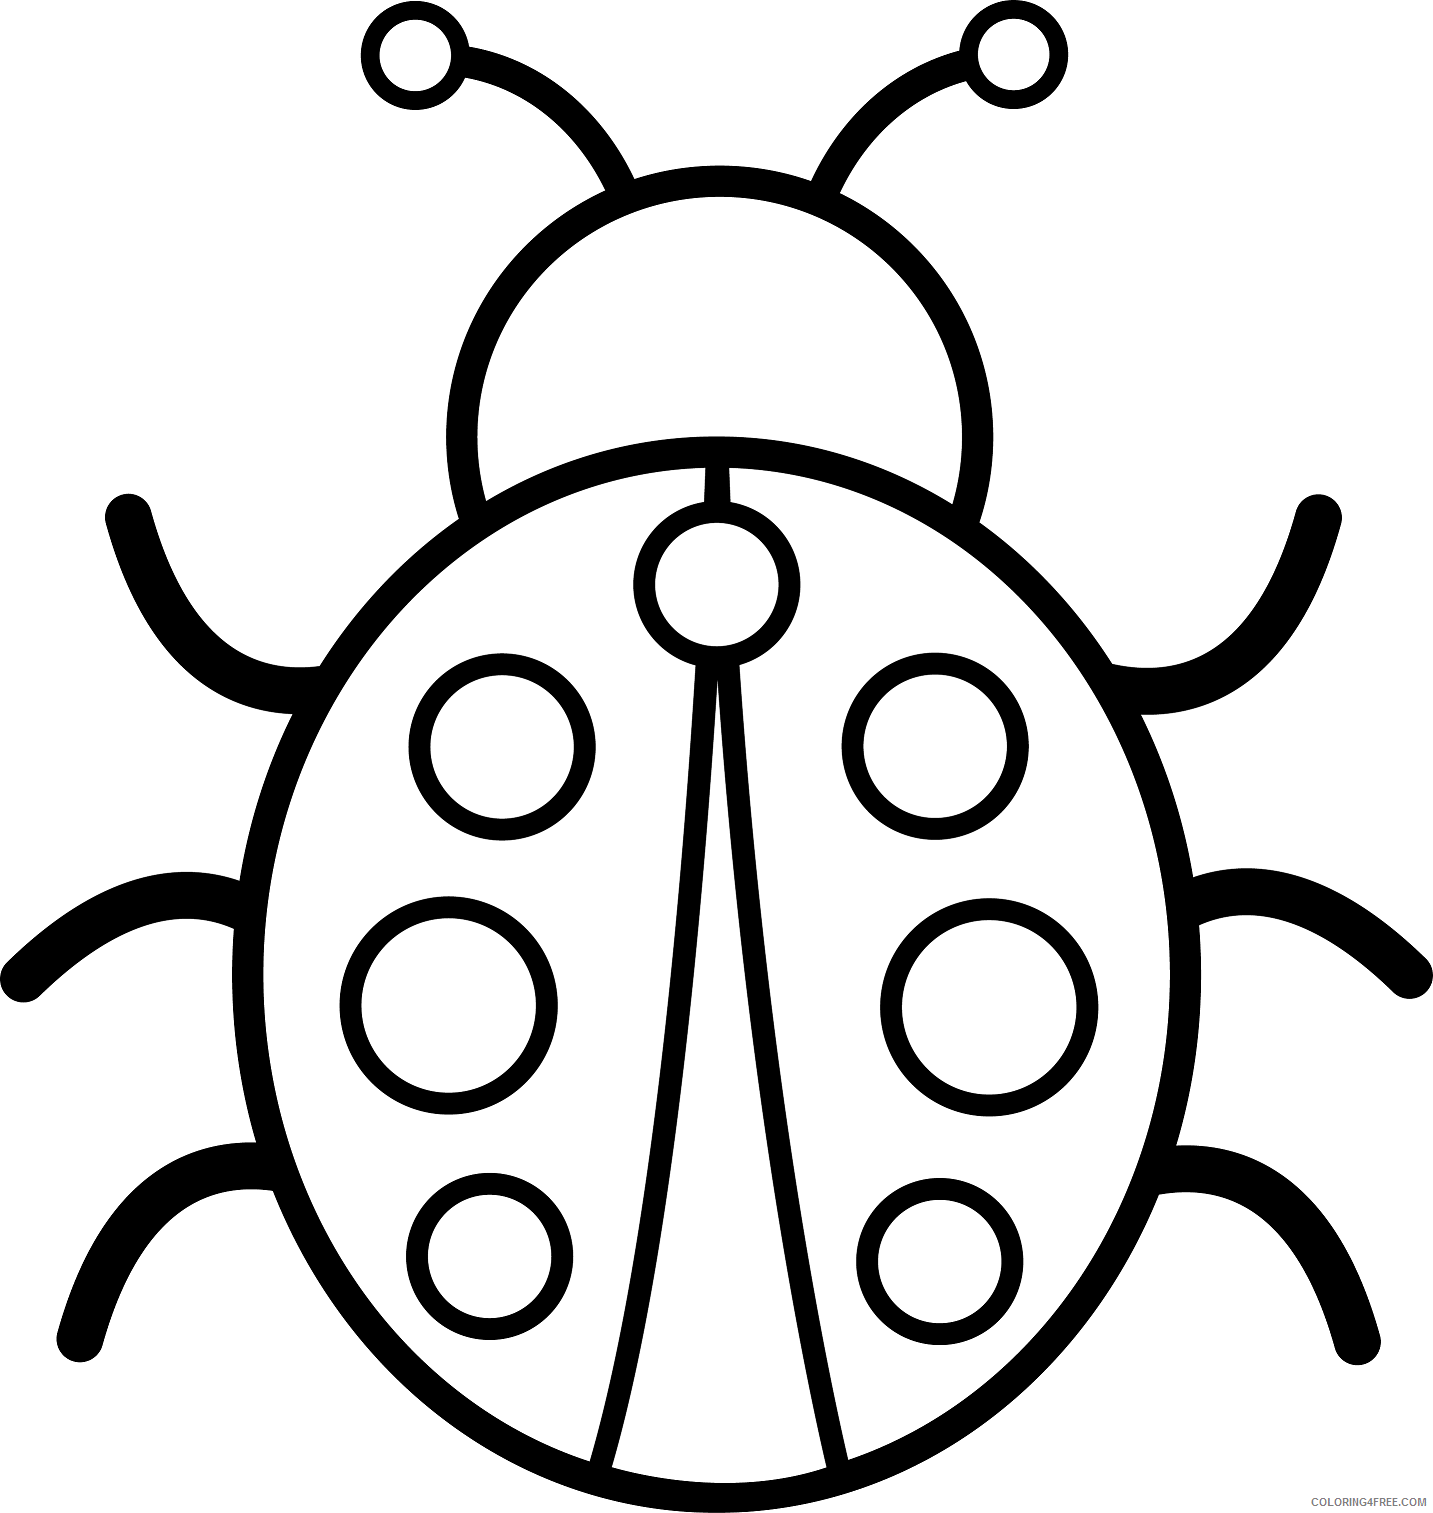 Insects Coloring Pages - GetColoringPages.com   1513x1433